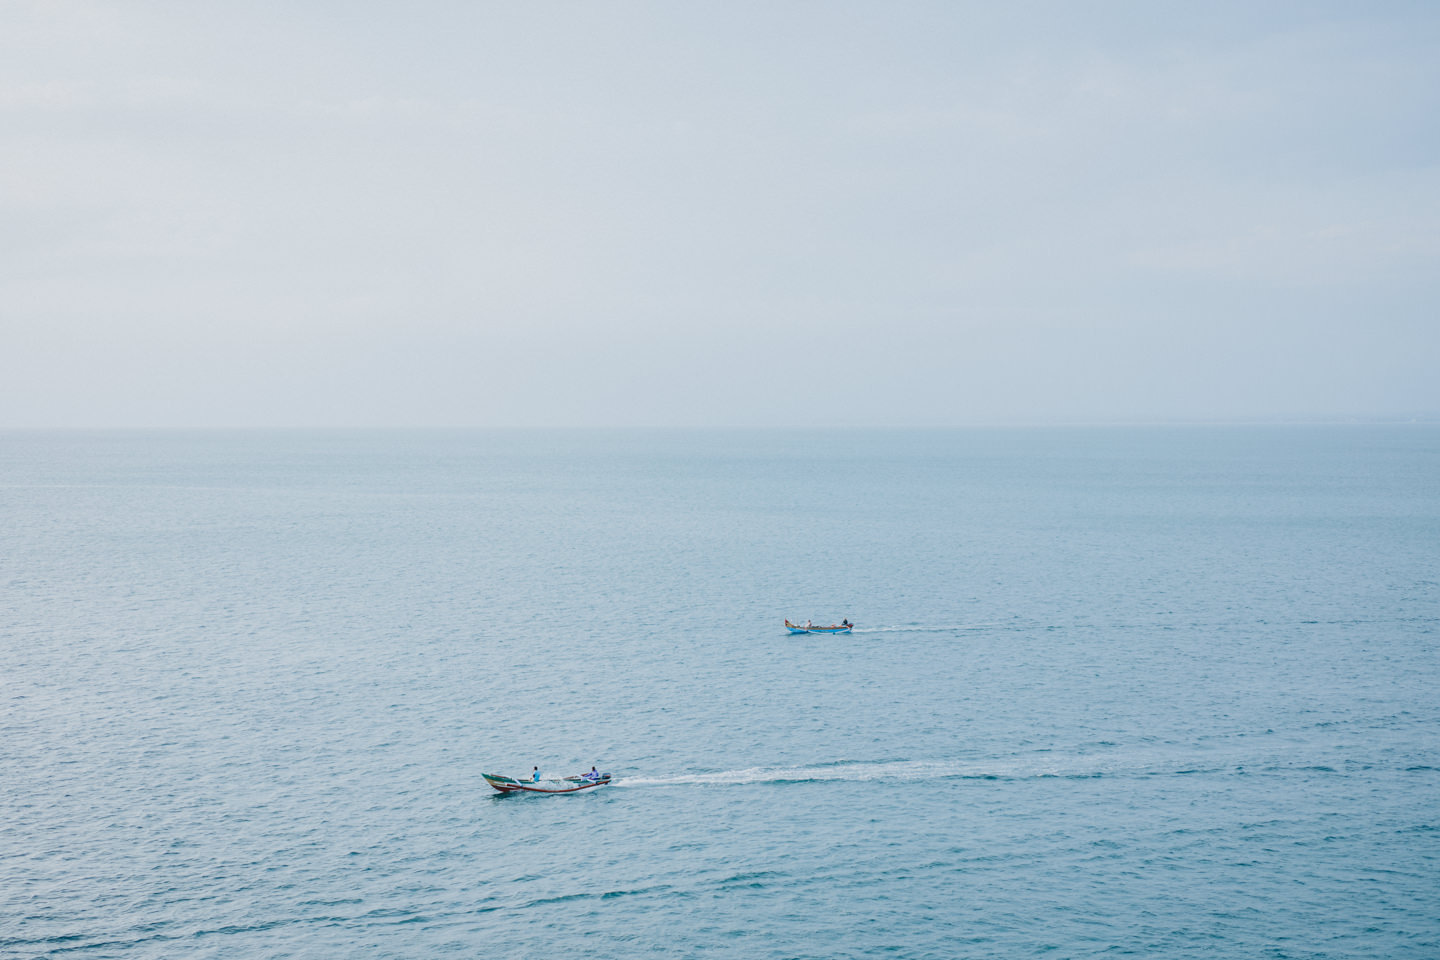 Two boat are passing by on the ocean far